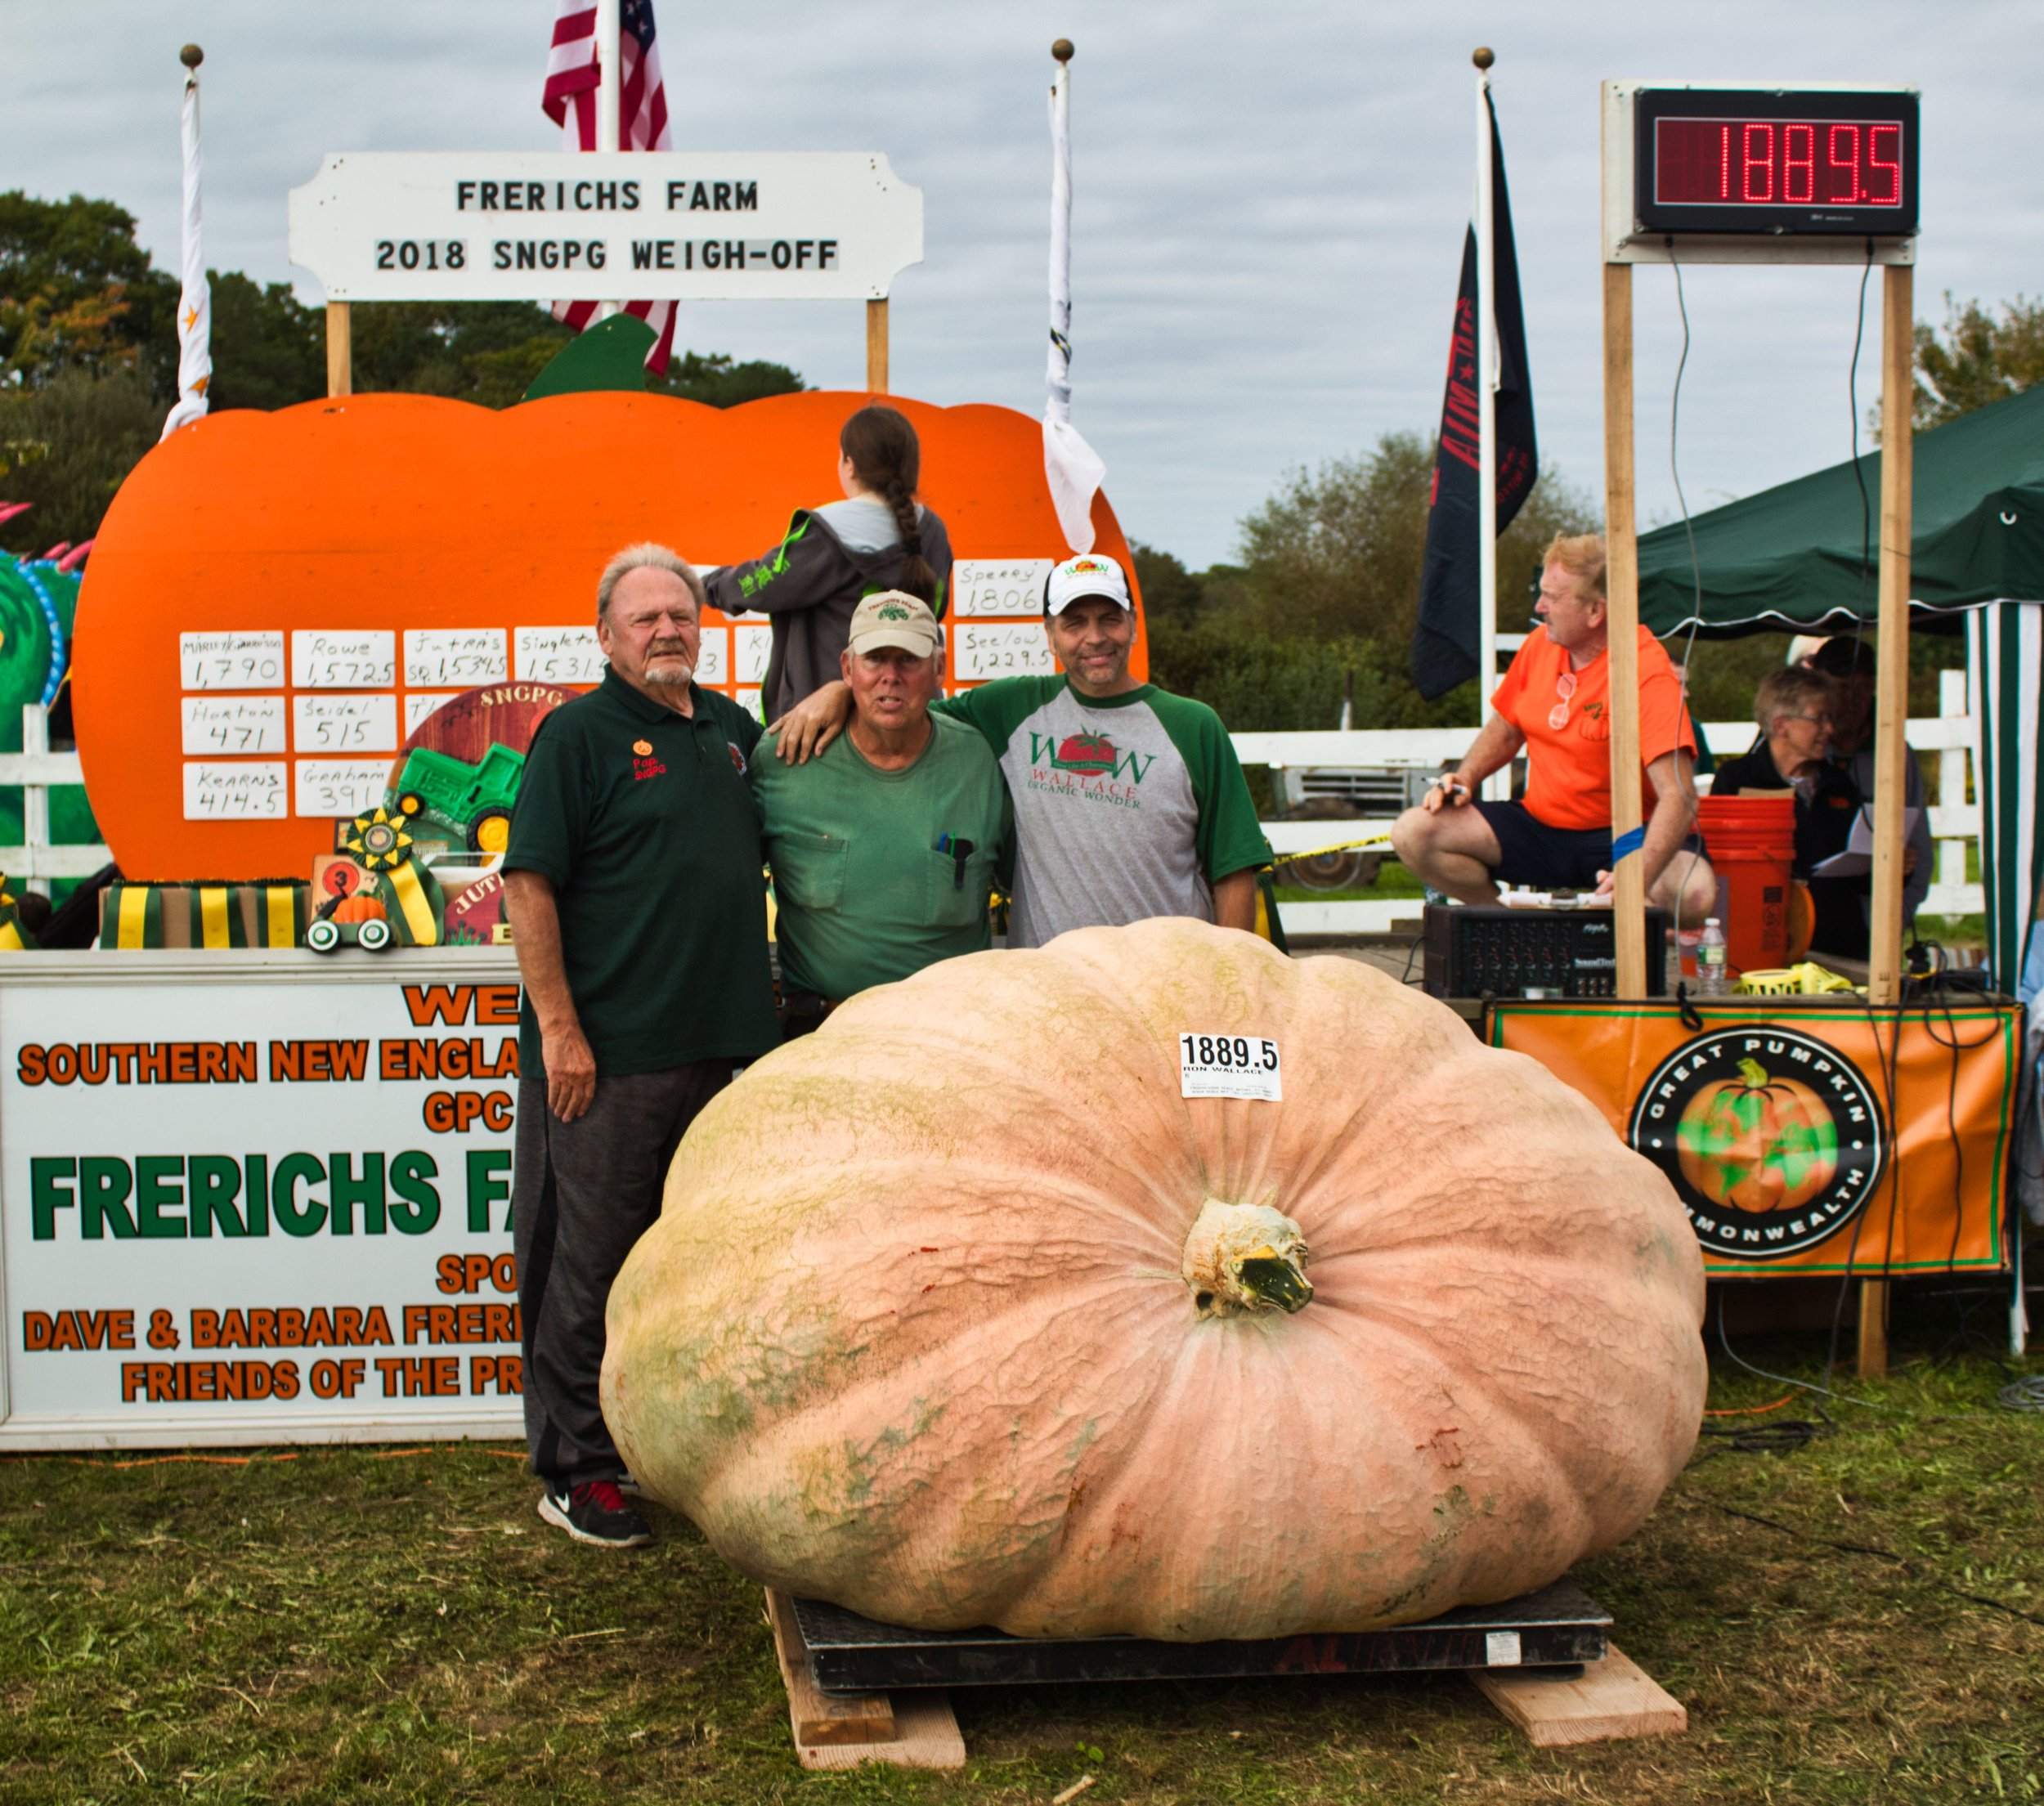 Giant_winner_pumpkin.jpg